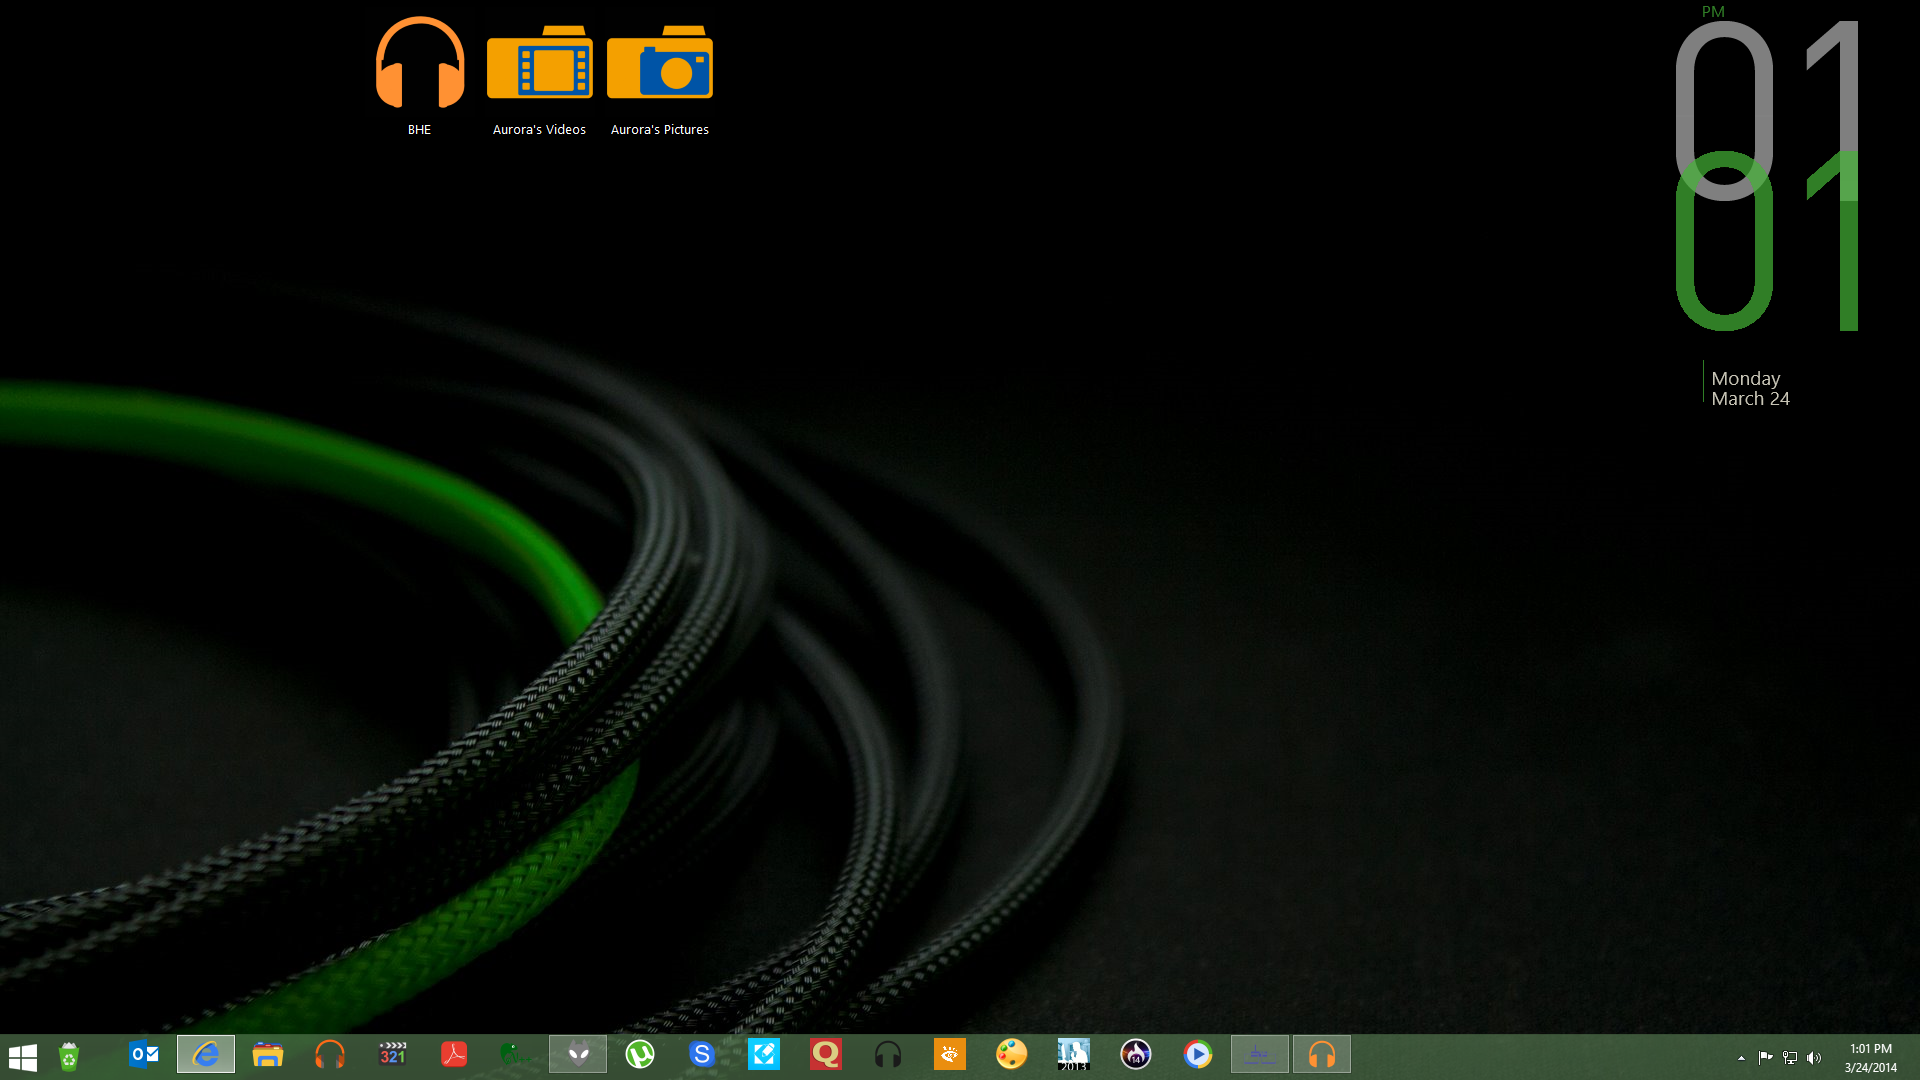 March 2014 Desktop.png